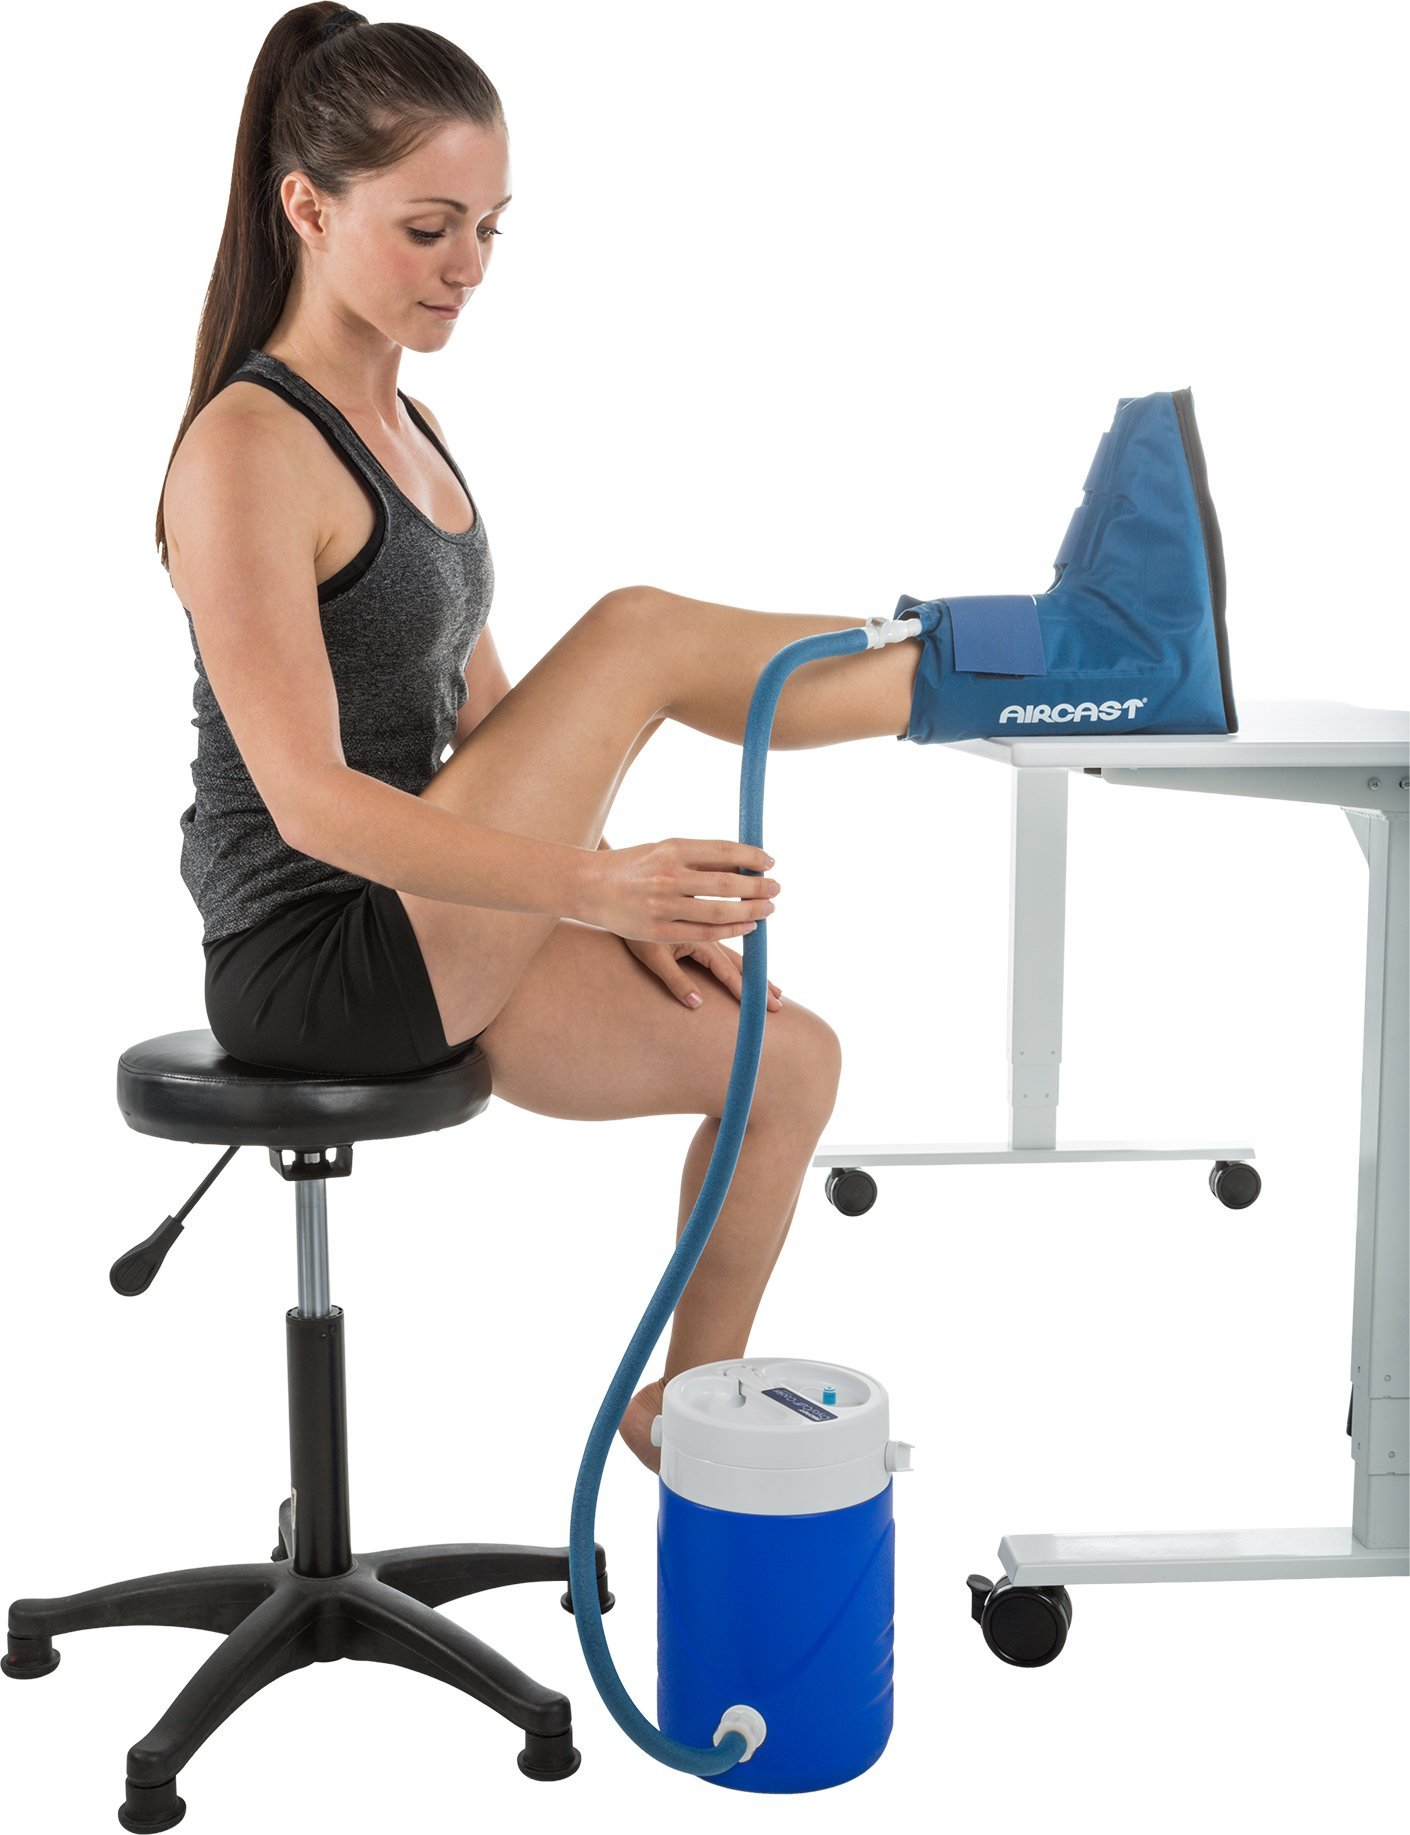 Aircast Cryo/Cuff Cold Therapy: Ankle Cryo/Cuff with Non-Motorized (Gravity-Fed) Cooler, One Size Fits Most by Aircast (Image #5)